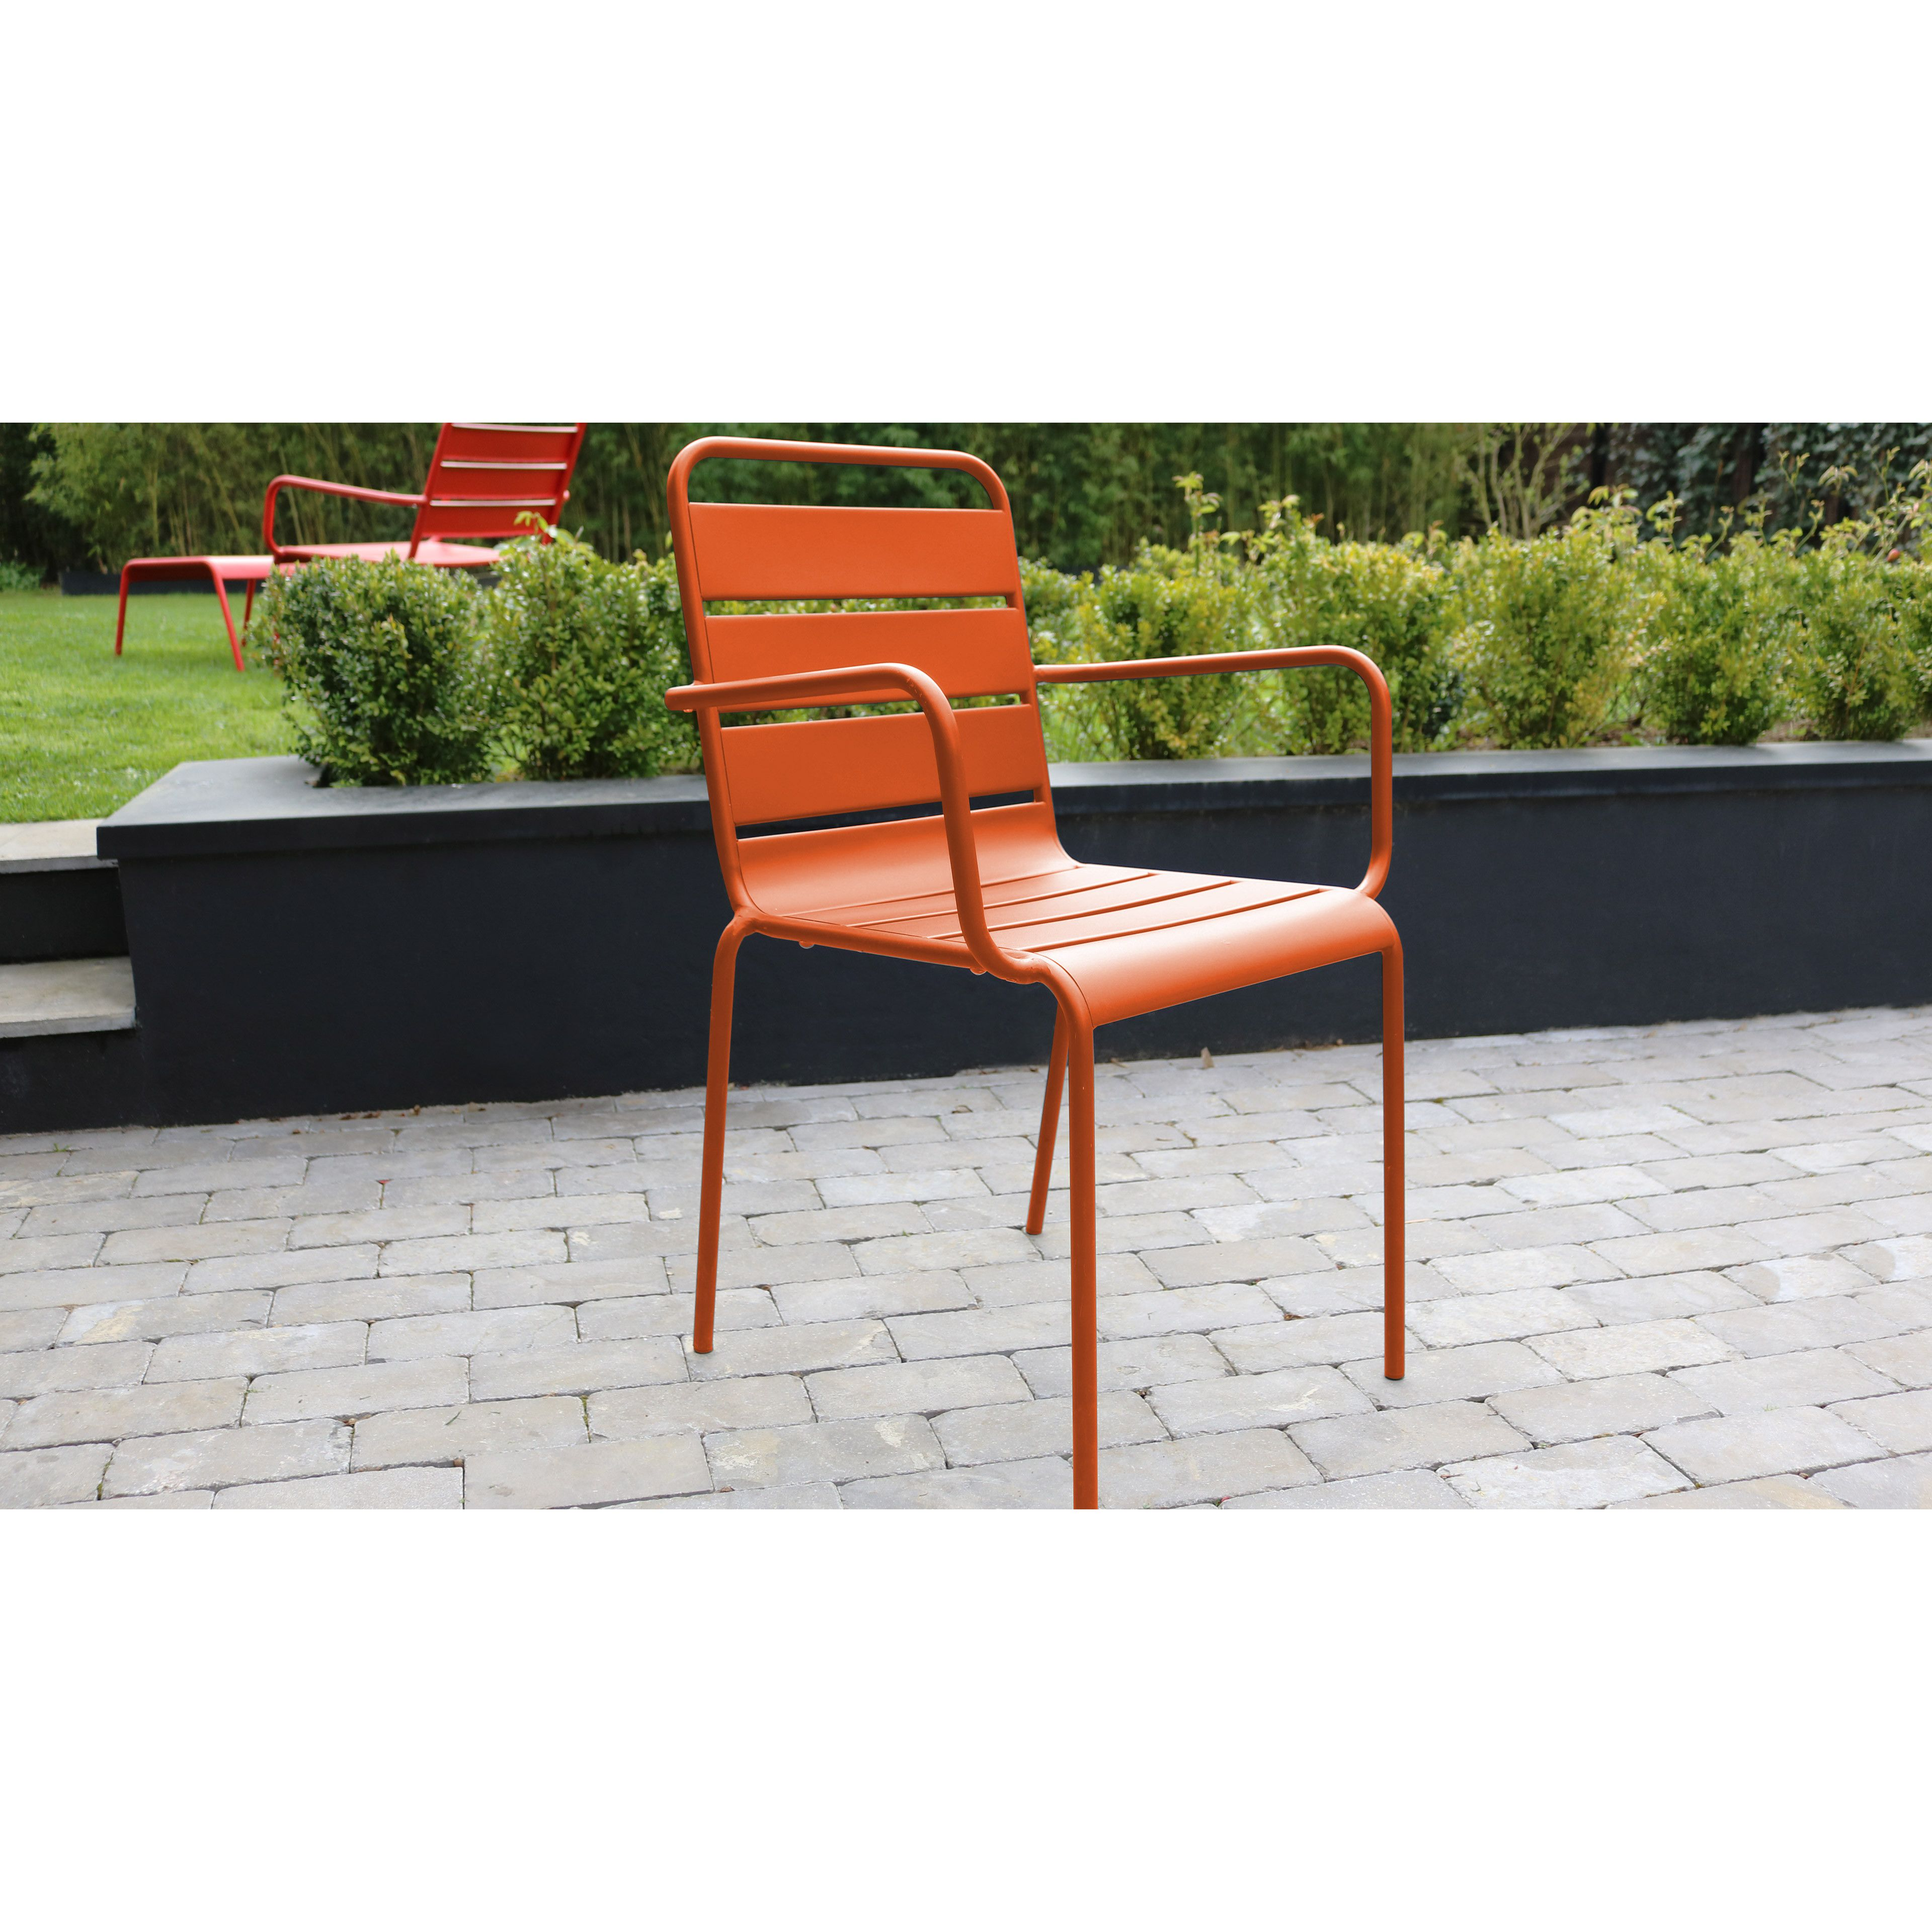 Stunning chaise salon de jardin orange photos design - Salon de jardin teck et aluminium ...